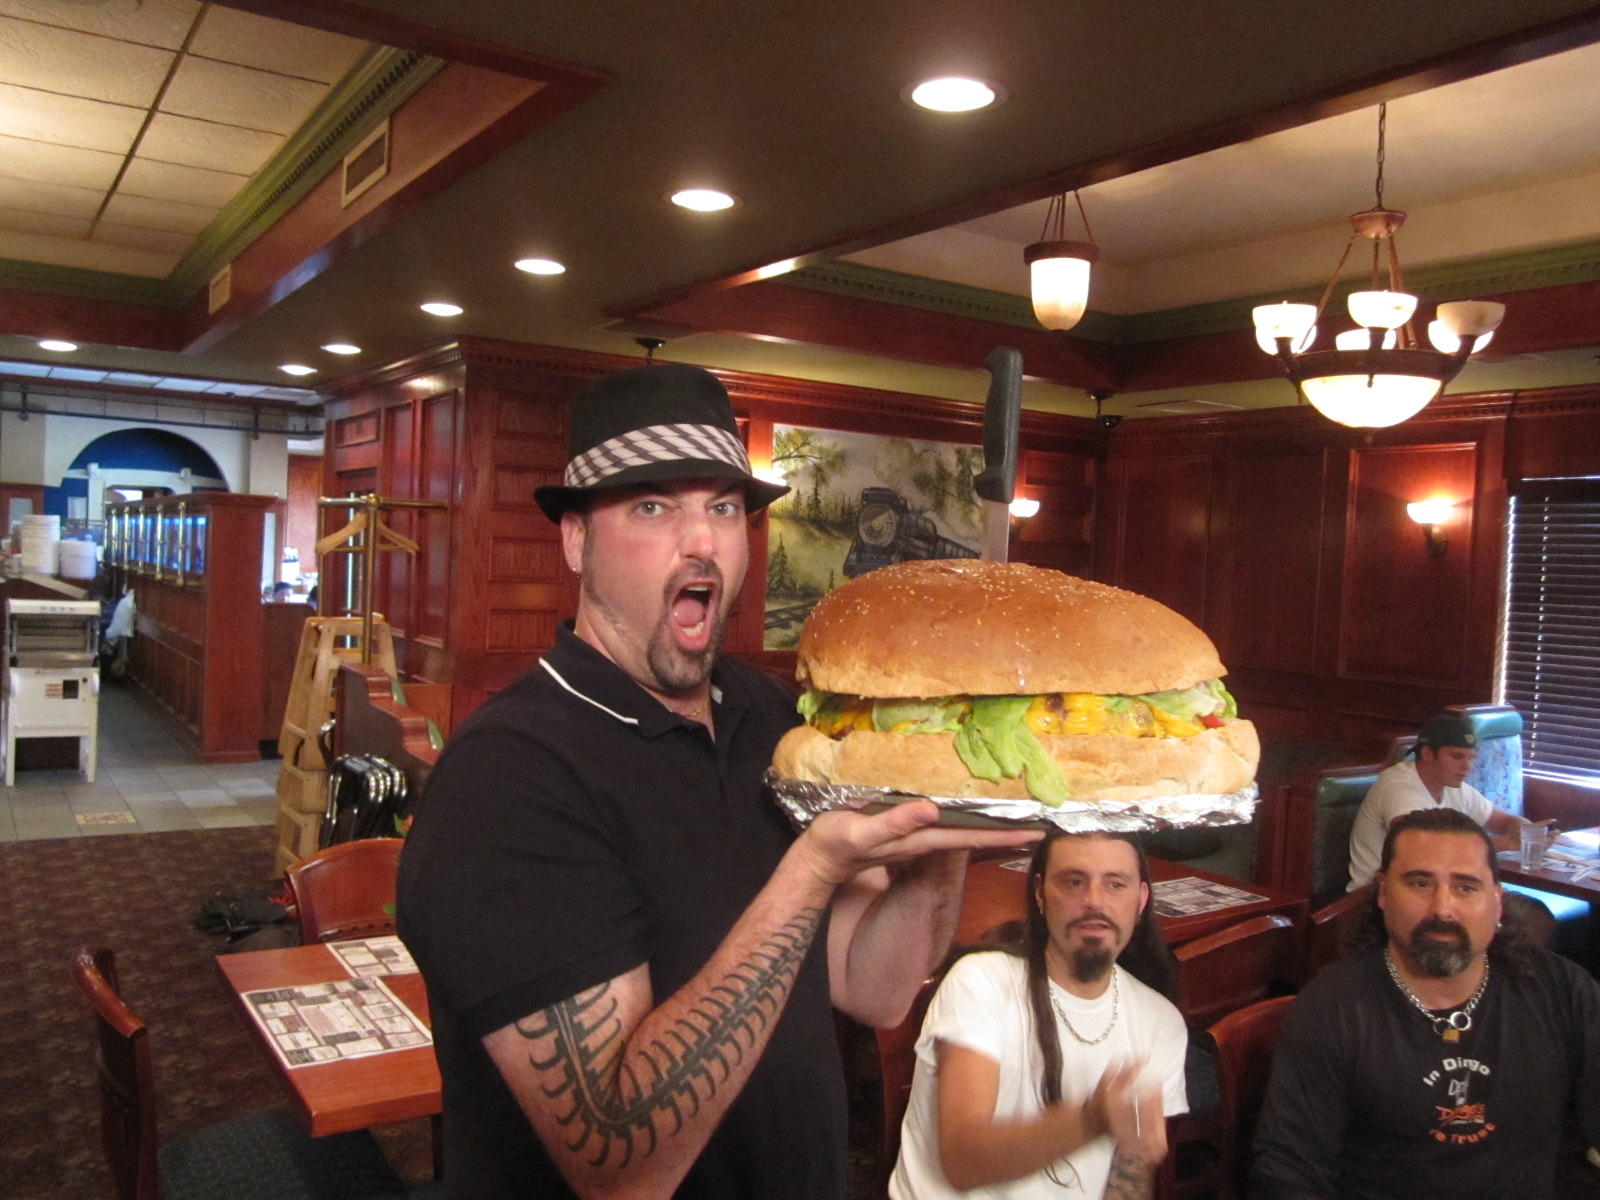 david-rev-ciancio-food-network-outrageous-foods-Clinton-Station-Diner-Mount-Olympus-Challenge 044